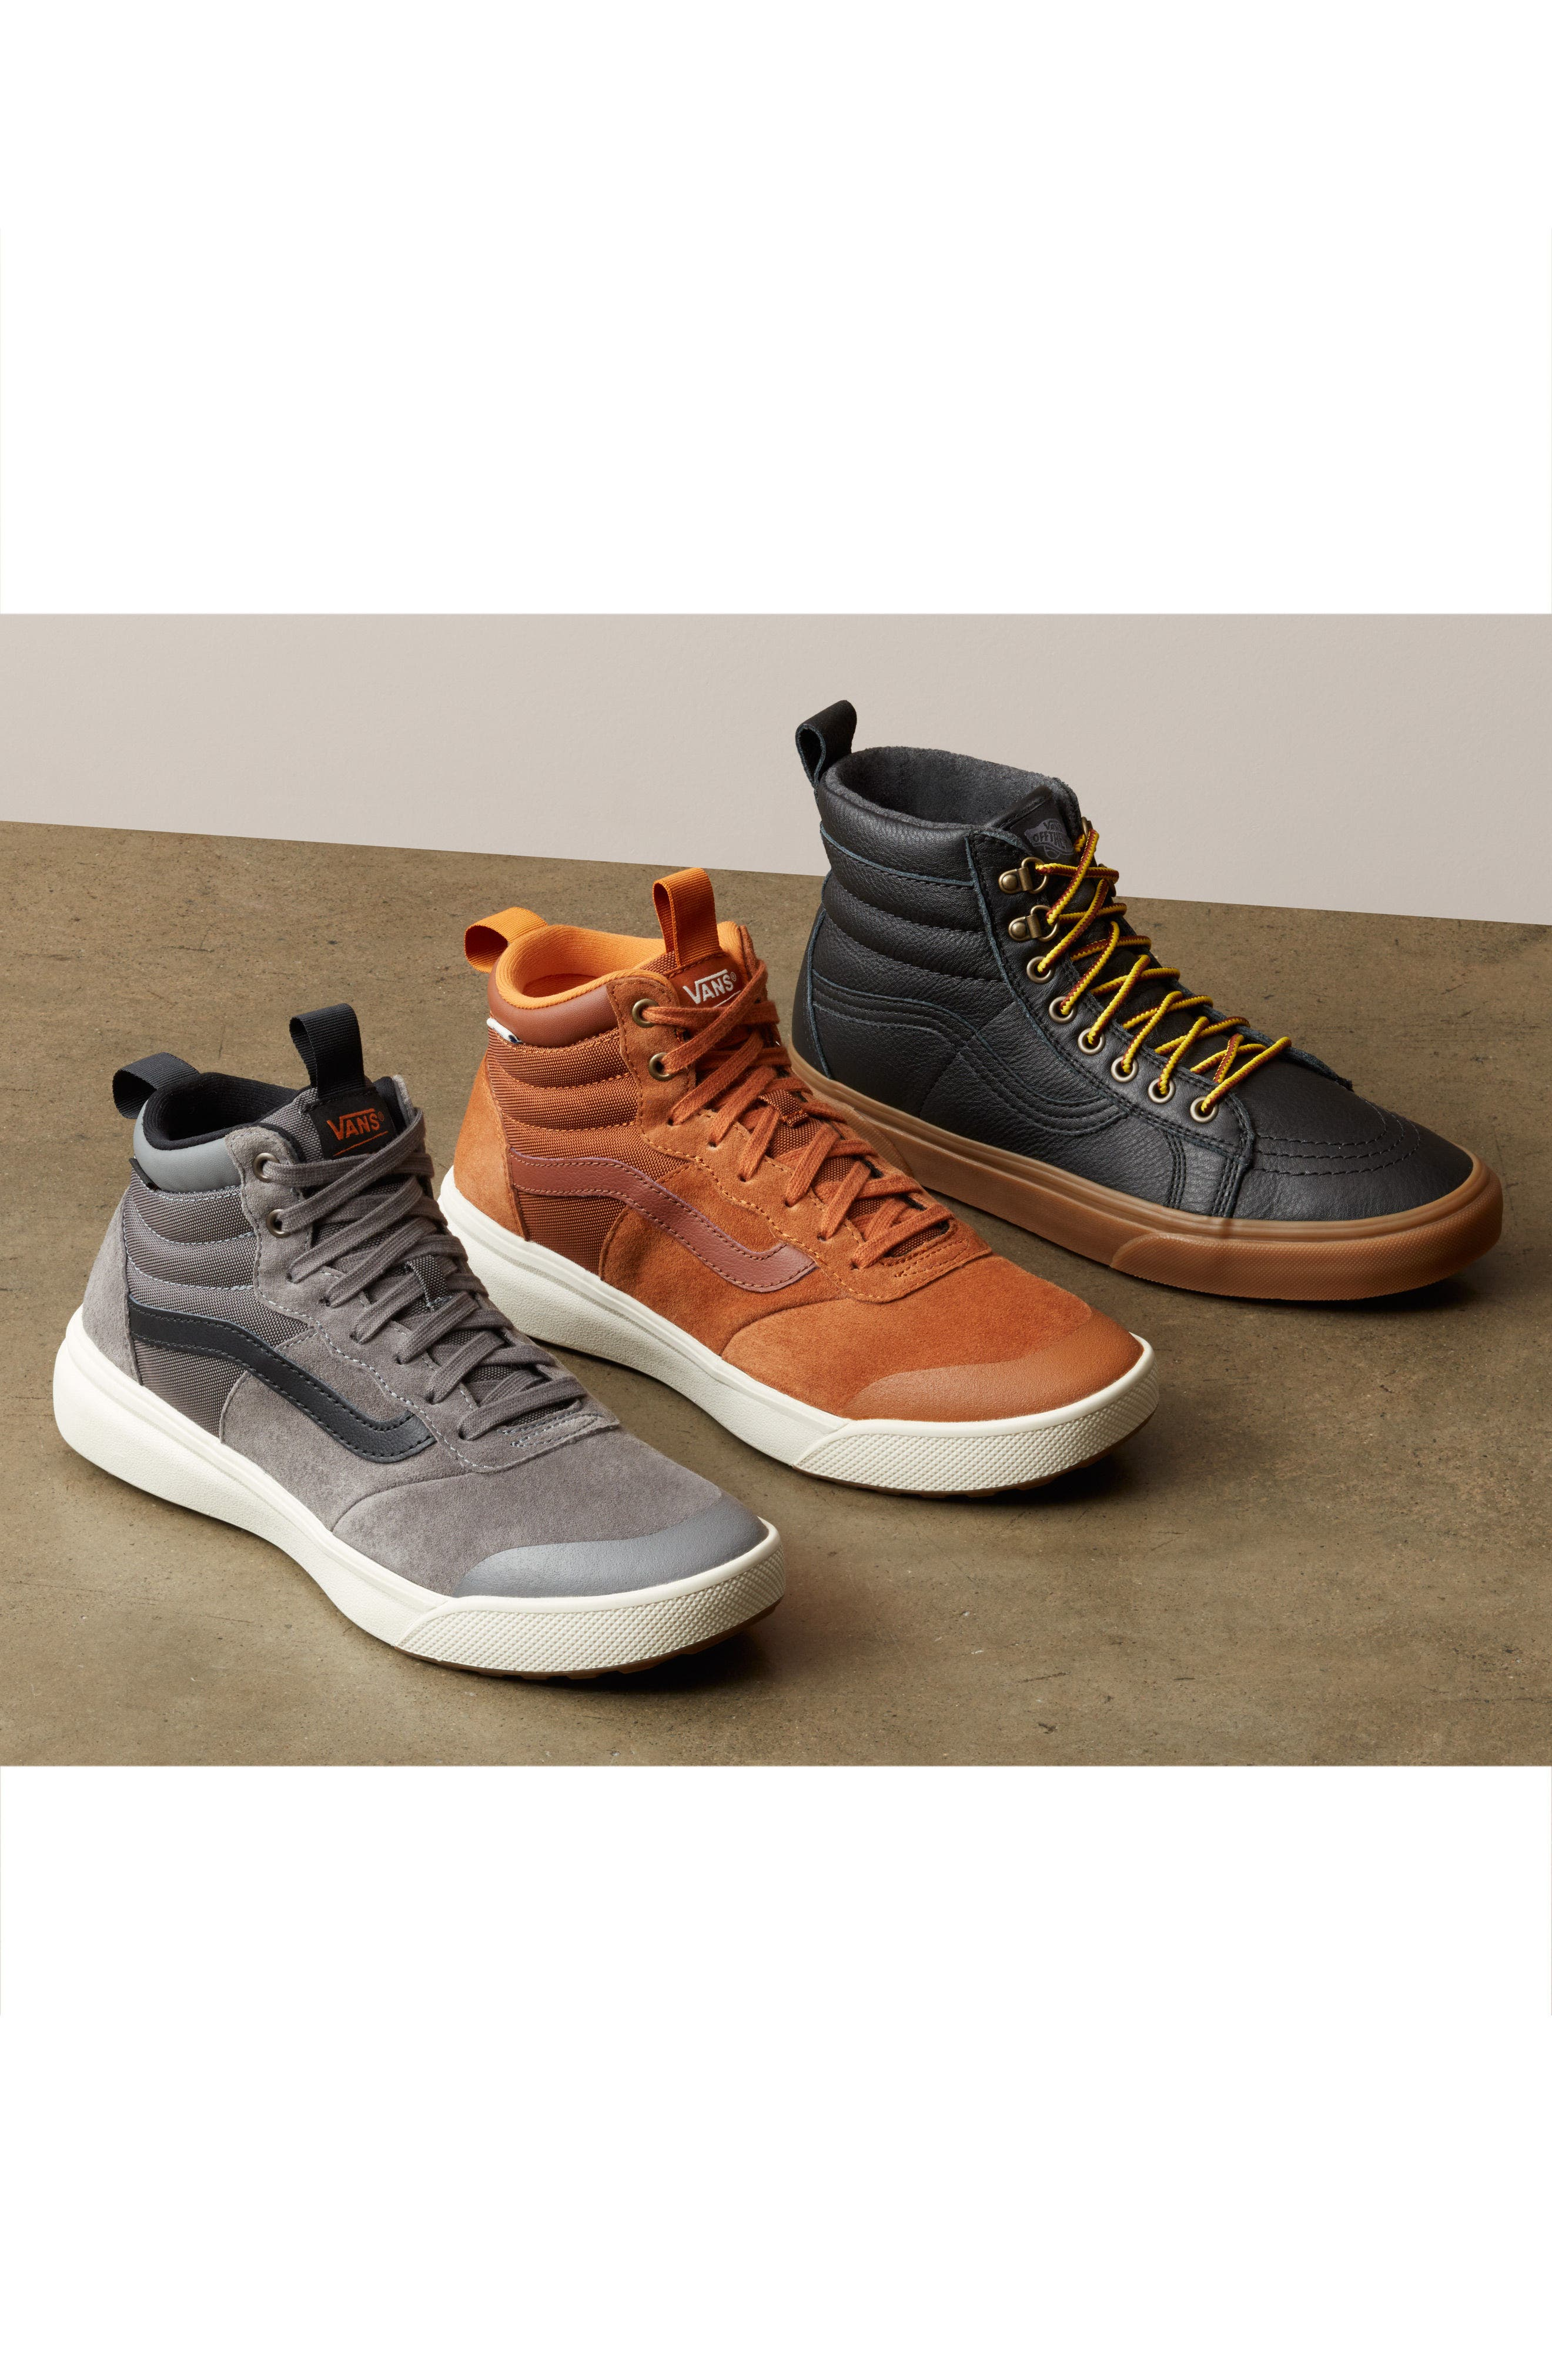 SK8-Hi MTE Insulated Water Resistant Sneaker,                             Alternate thumbnail 8, color,                             001